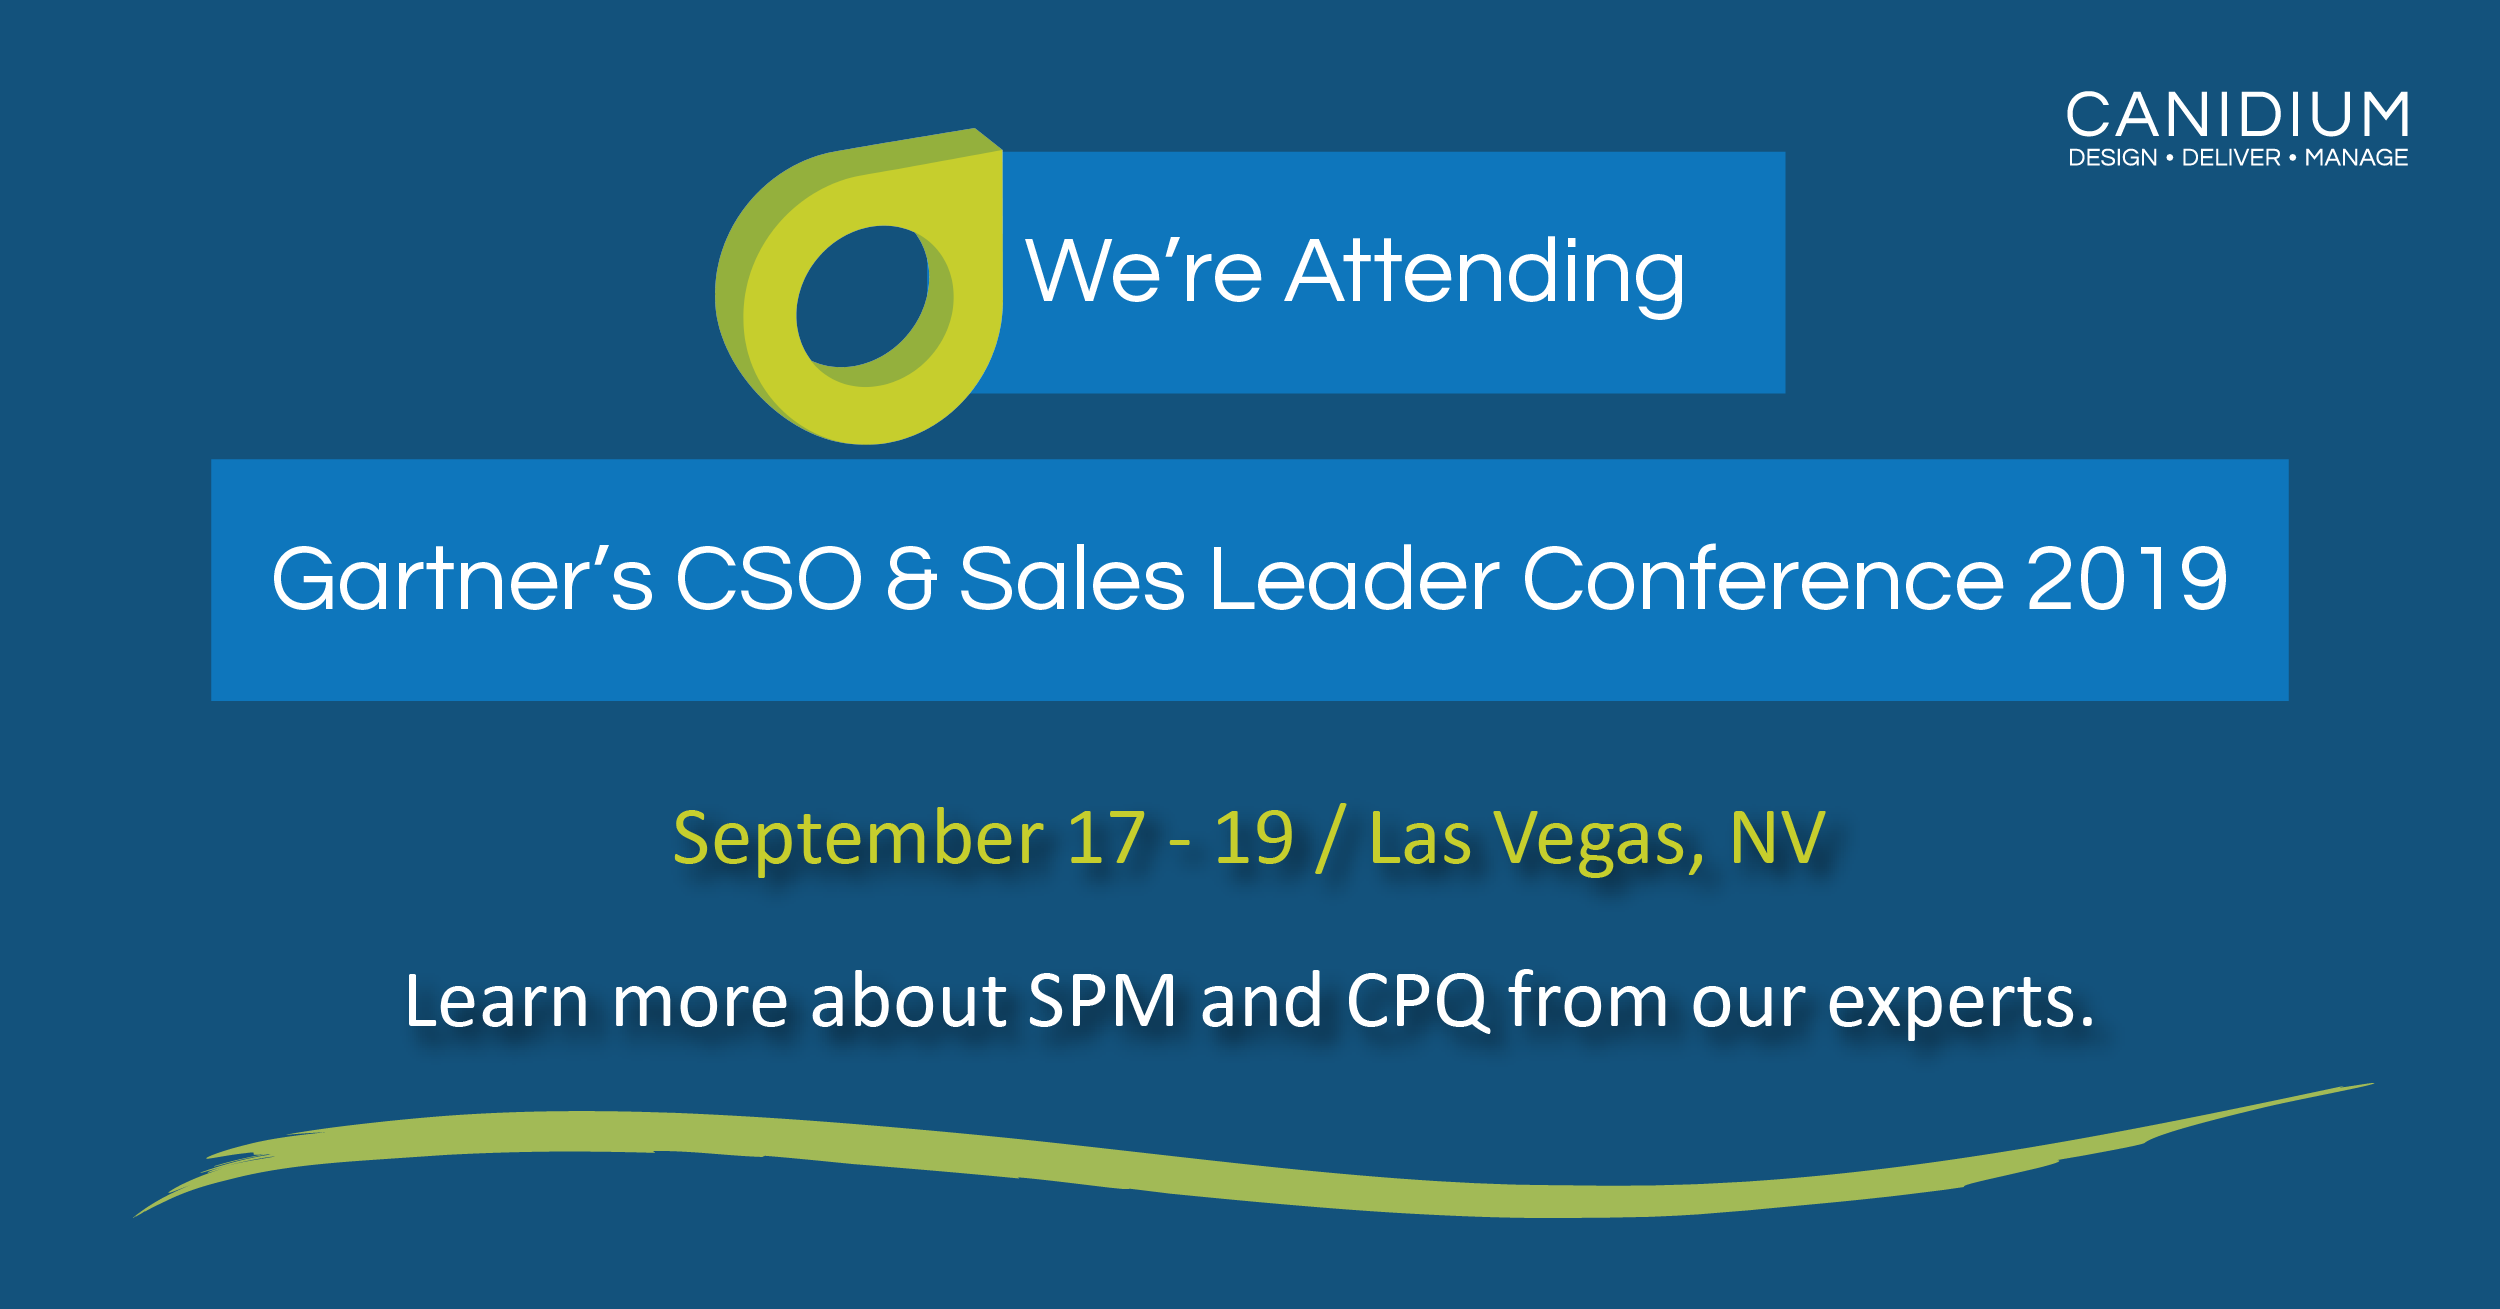 Why Camille Carpenter is attending the Gartner CSO & Sales Leader Conference